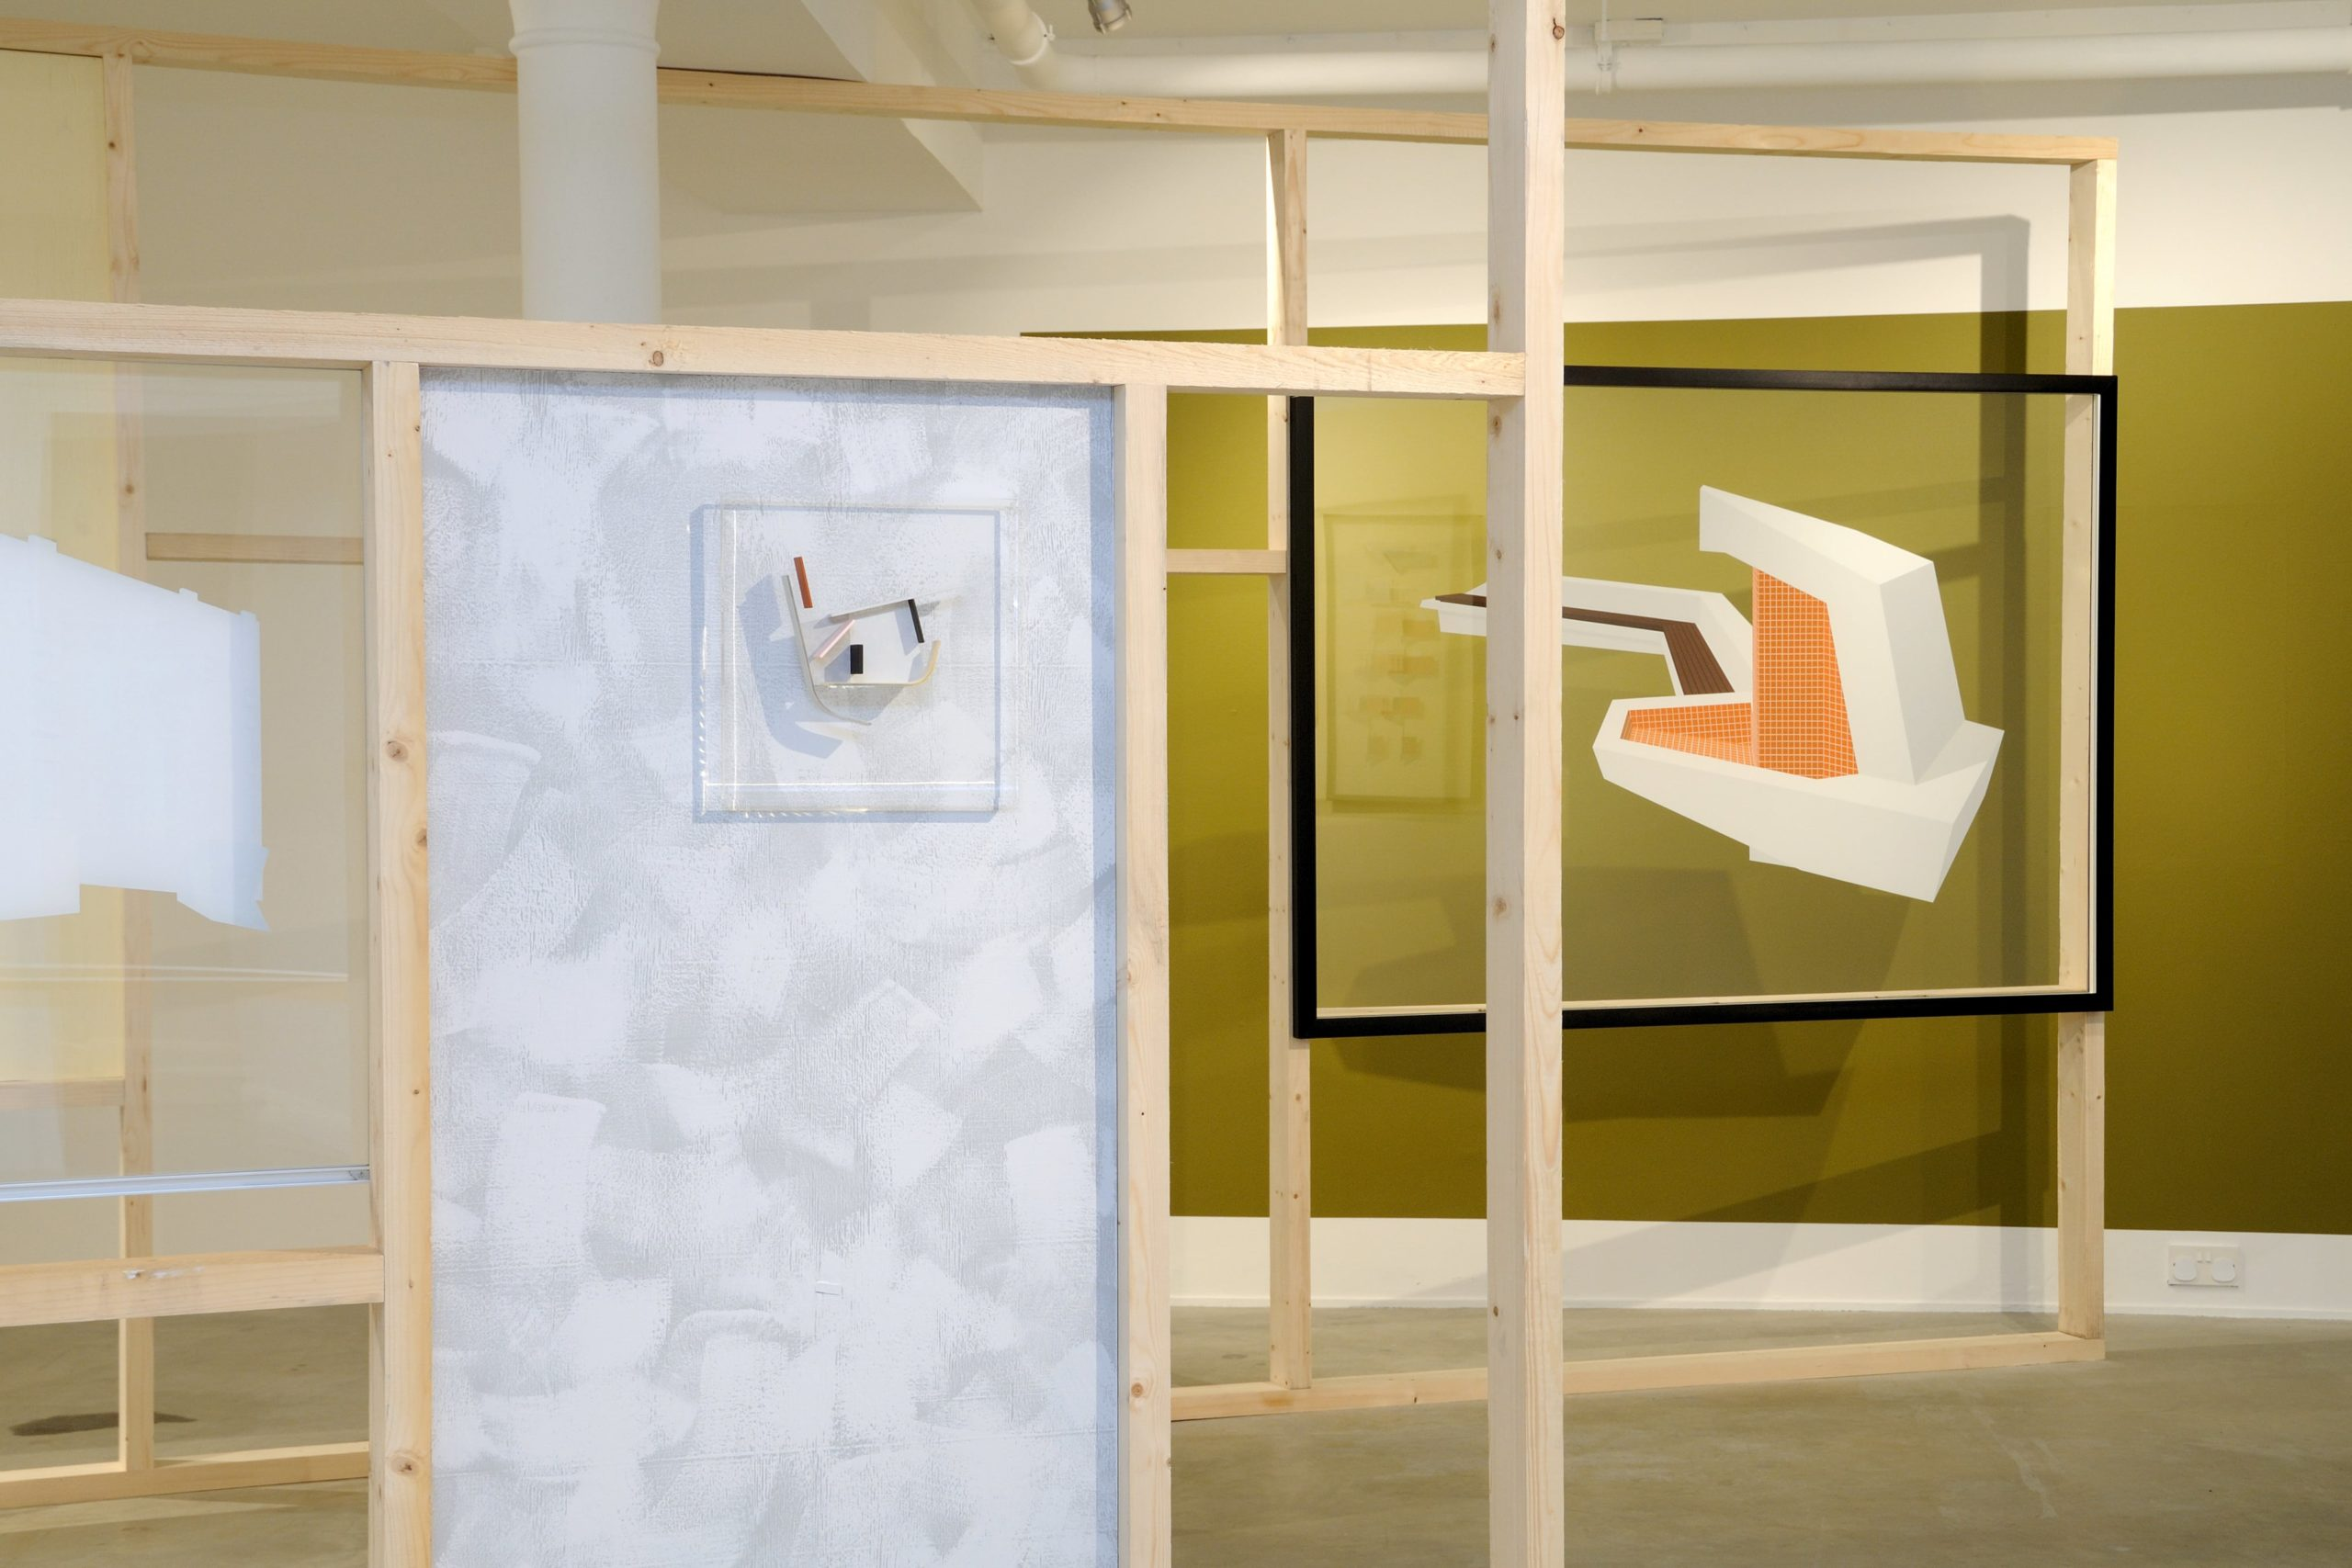 Toby Paterson at Void Gallery installation